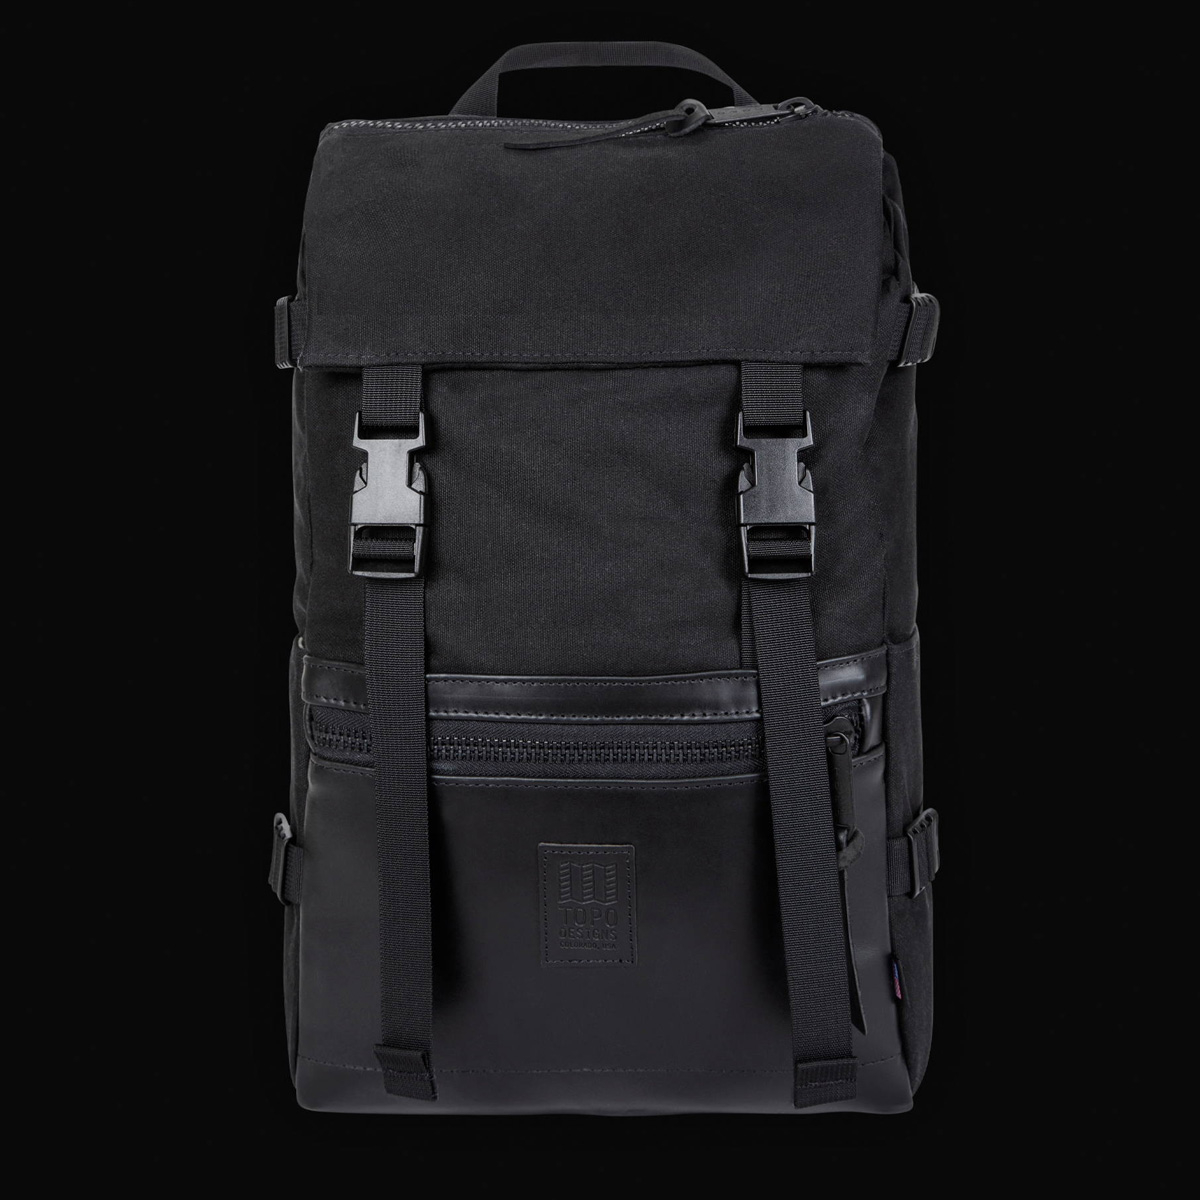 Topo Designs Rover Pack Heritage Black Canvas/Black Leather, timeless backpack with great functionalities